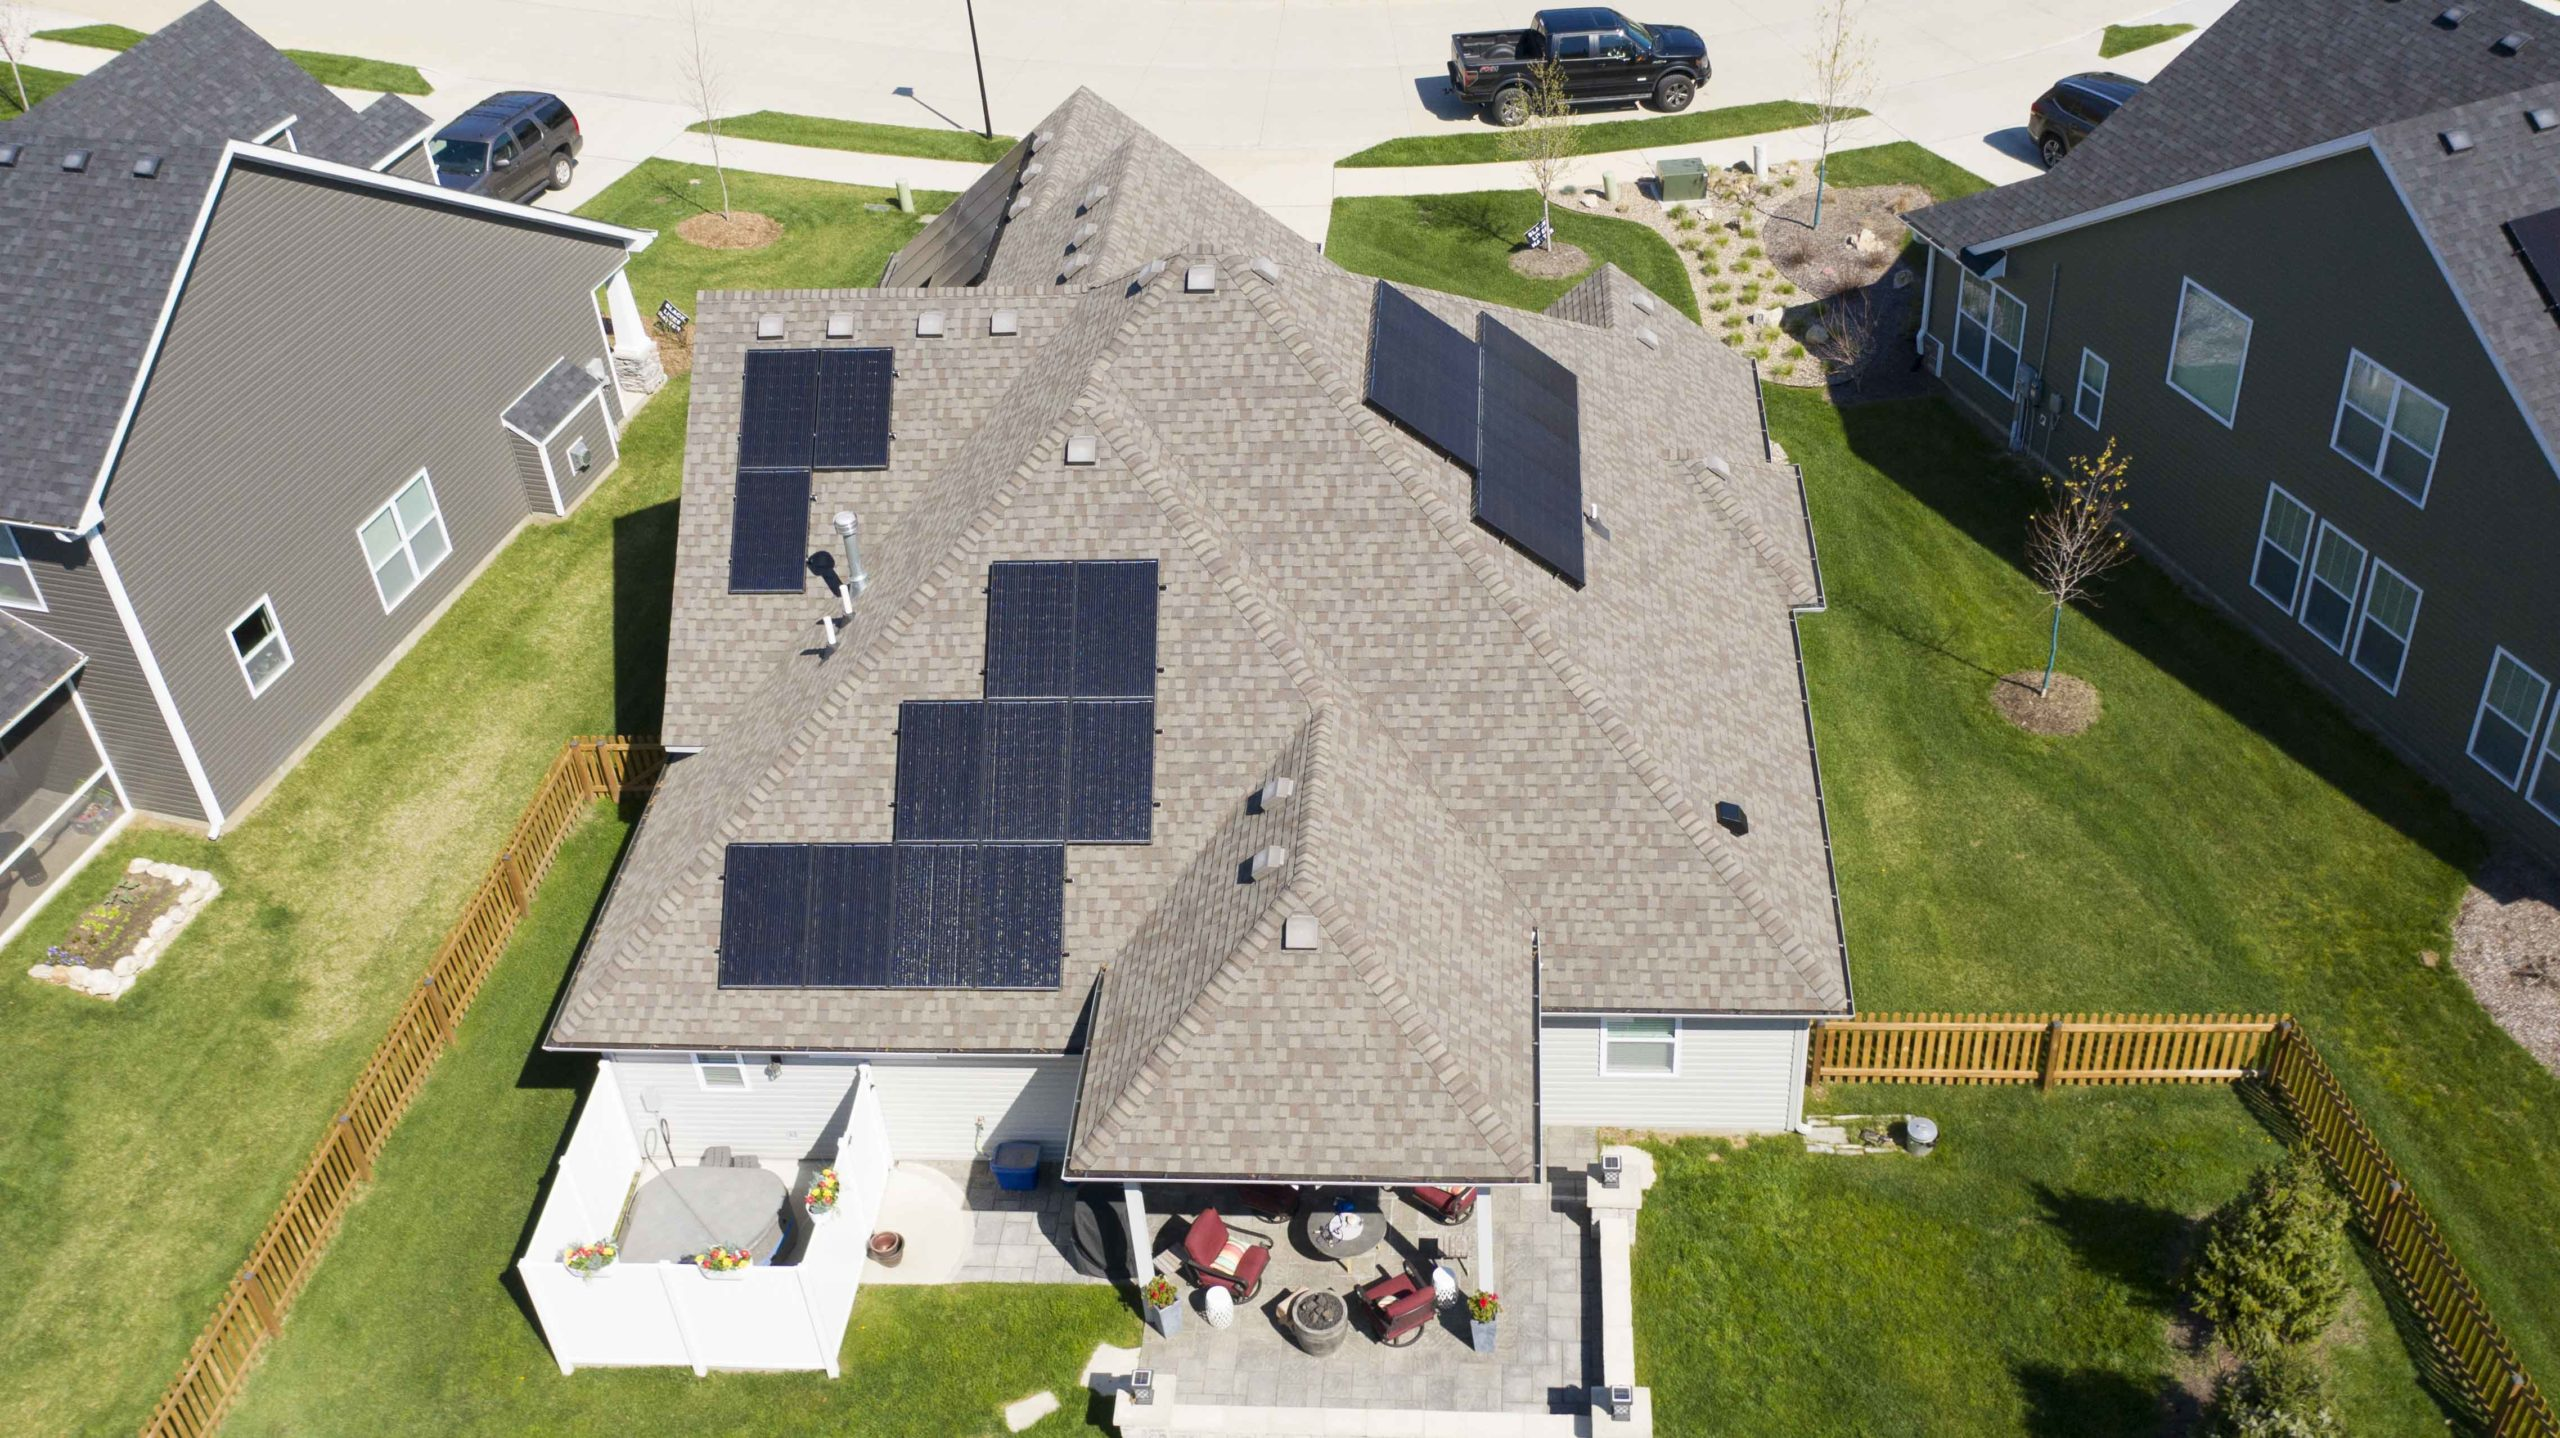 Check out the unique solar panel arrangement to fit the needs of this Columbia, Missouri home. Installer Dogwood Solar fit the panels to the space available to fit the needs of the household.